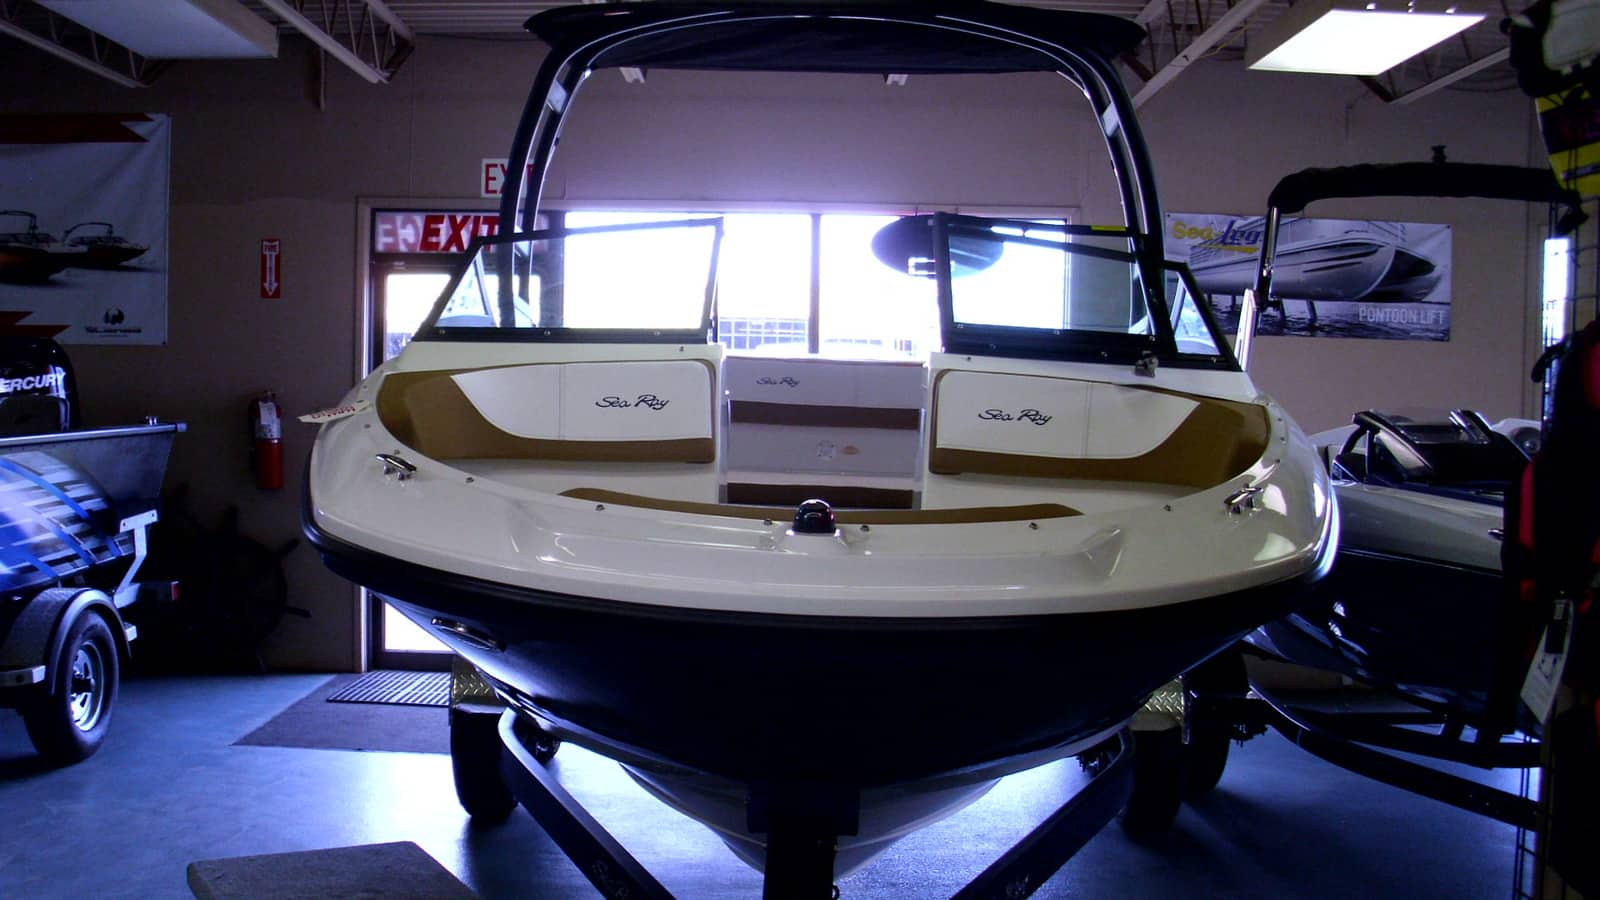 NEW 2019 Sea Ray SPX 190 Elevation Edition - Lighthouse Marine